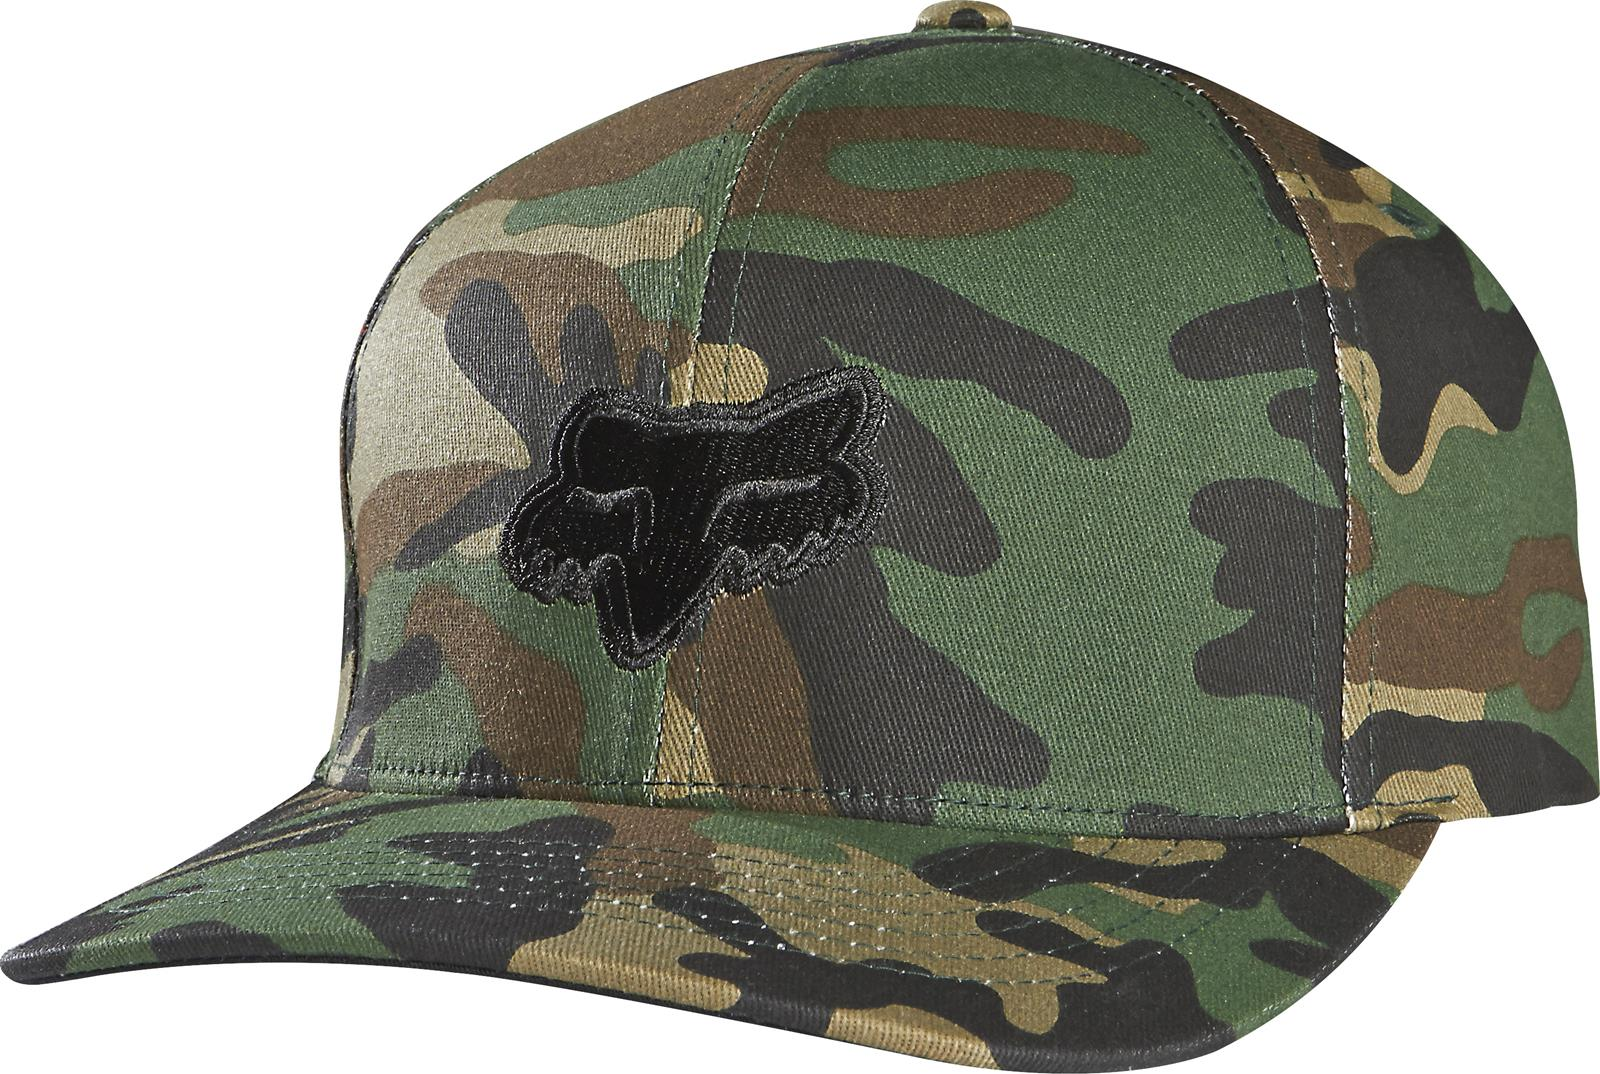 523f731cfc3 Fox Racing Legacy Flexfit Hats 58225-027-S M - Free Shipping on Orders Over   99 at Summit Racing